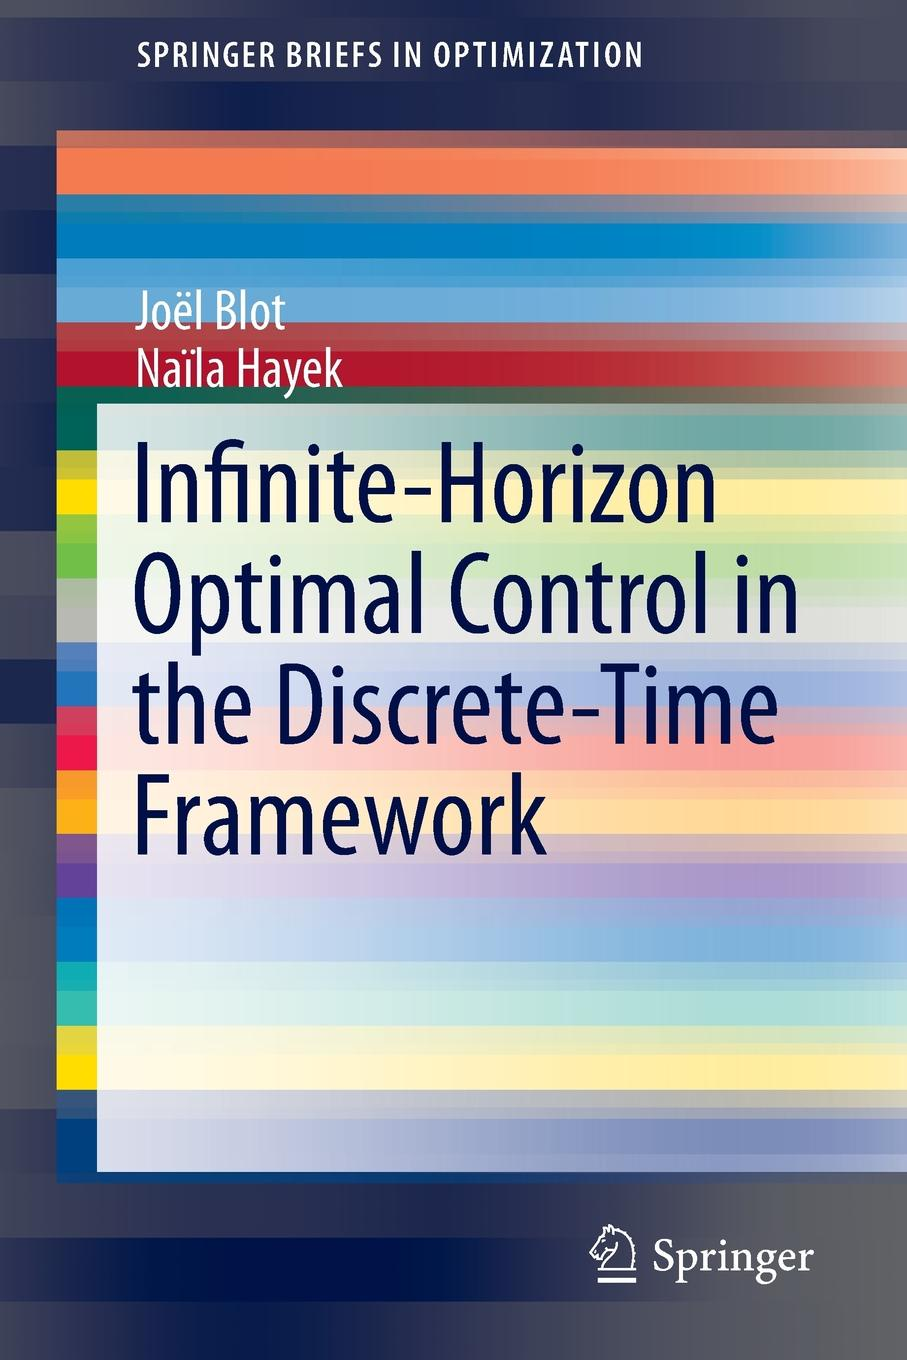 цена на Infinite-Horizon Optimal Control in the Discrete-Time Framework